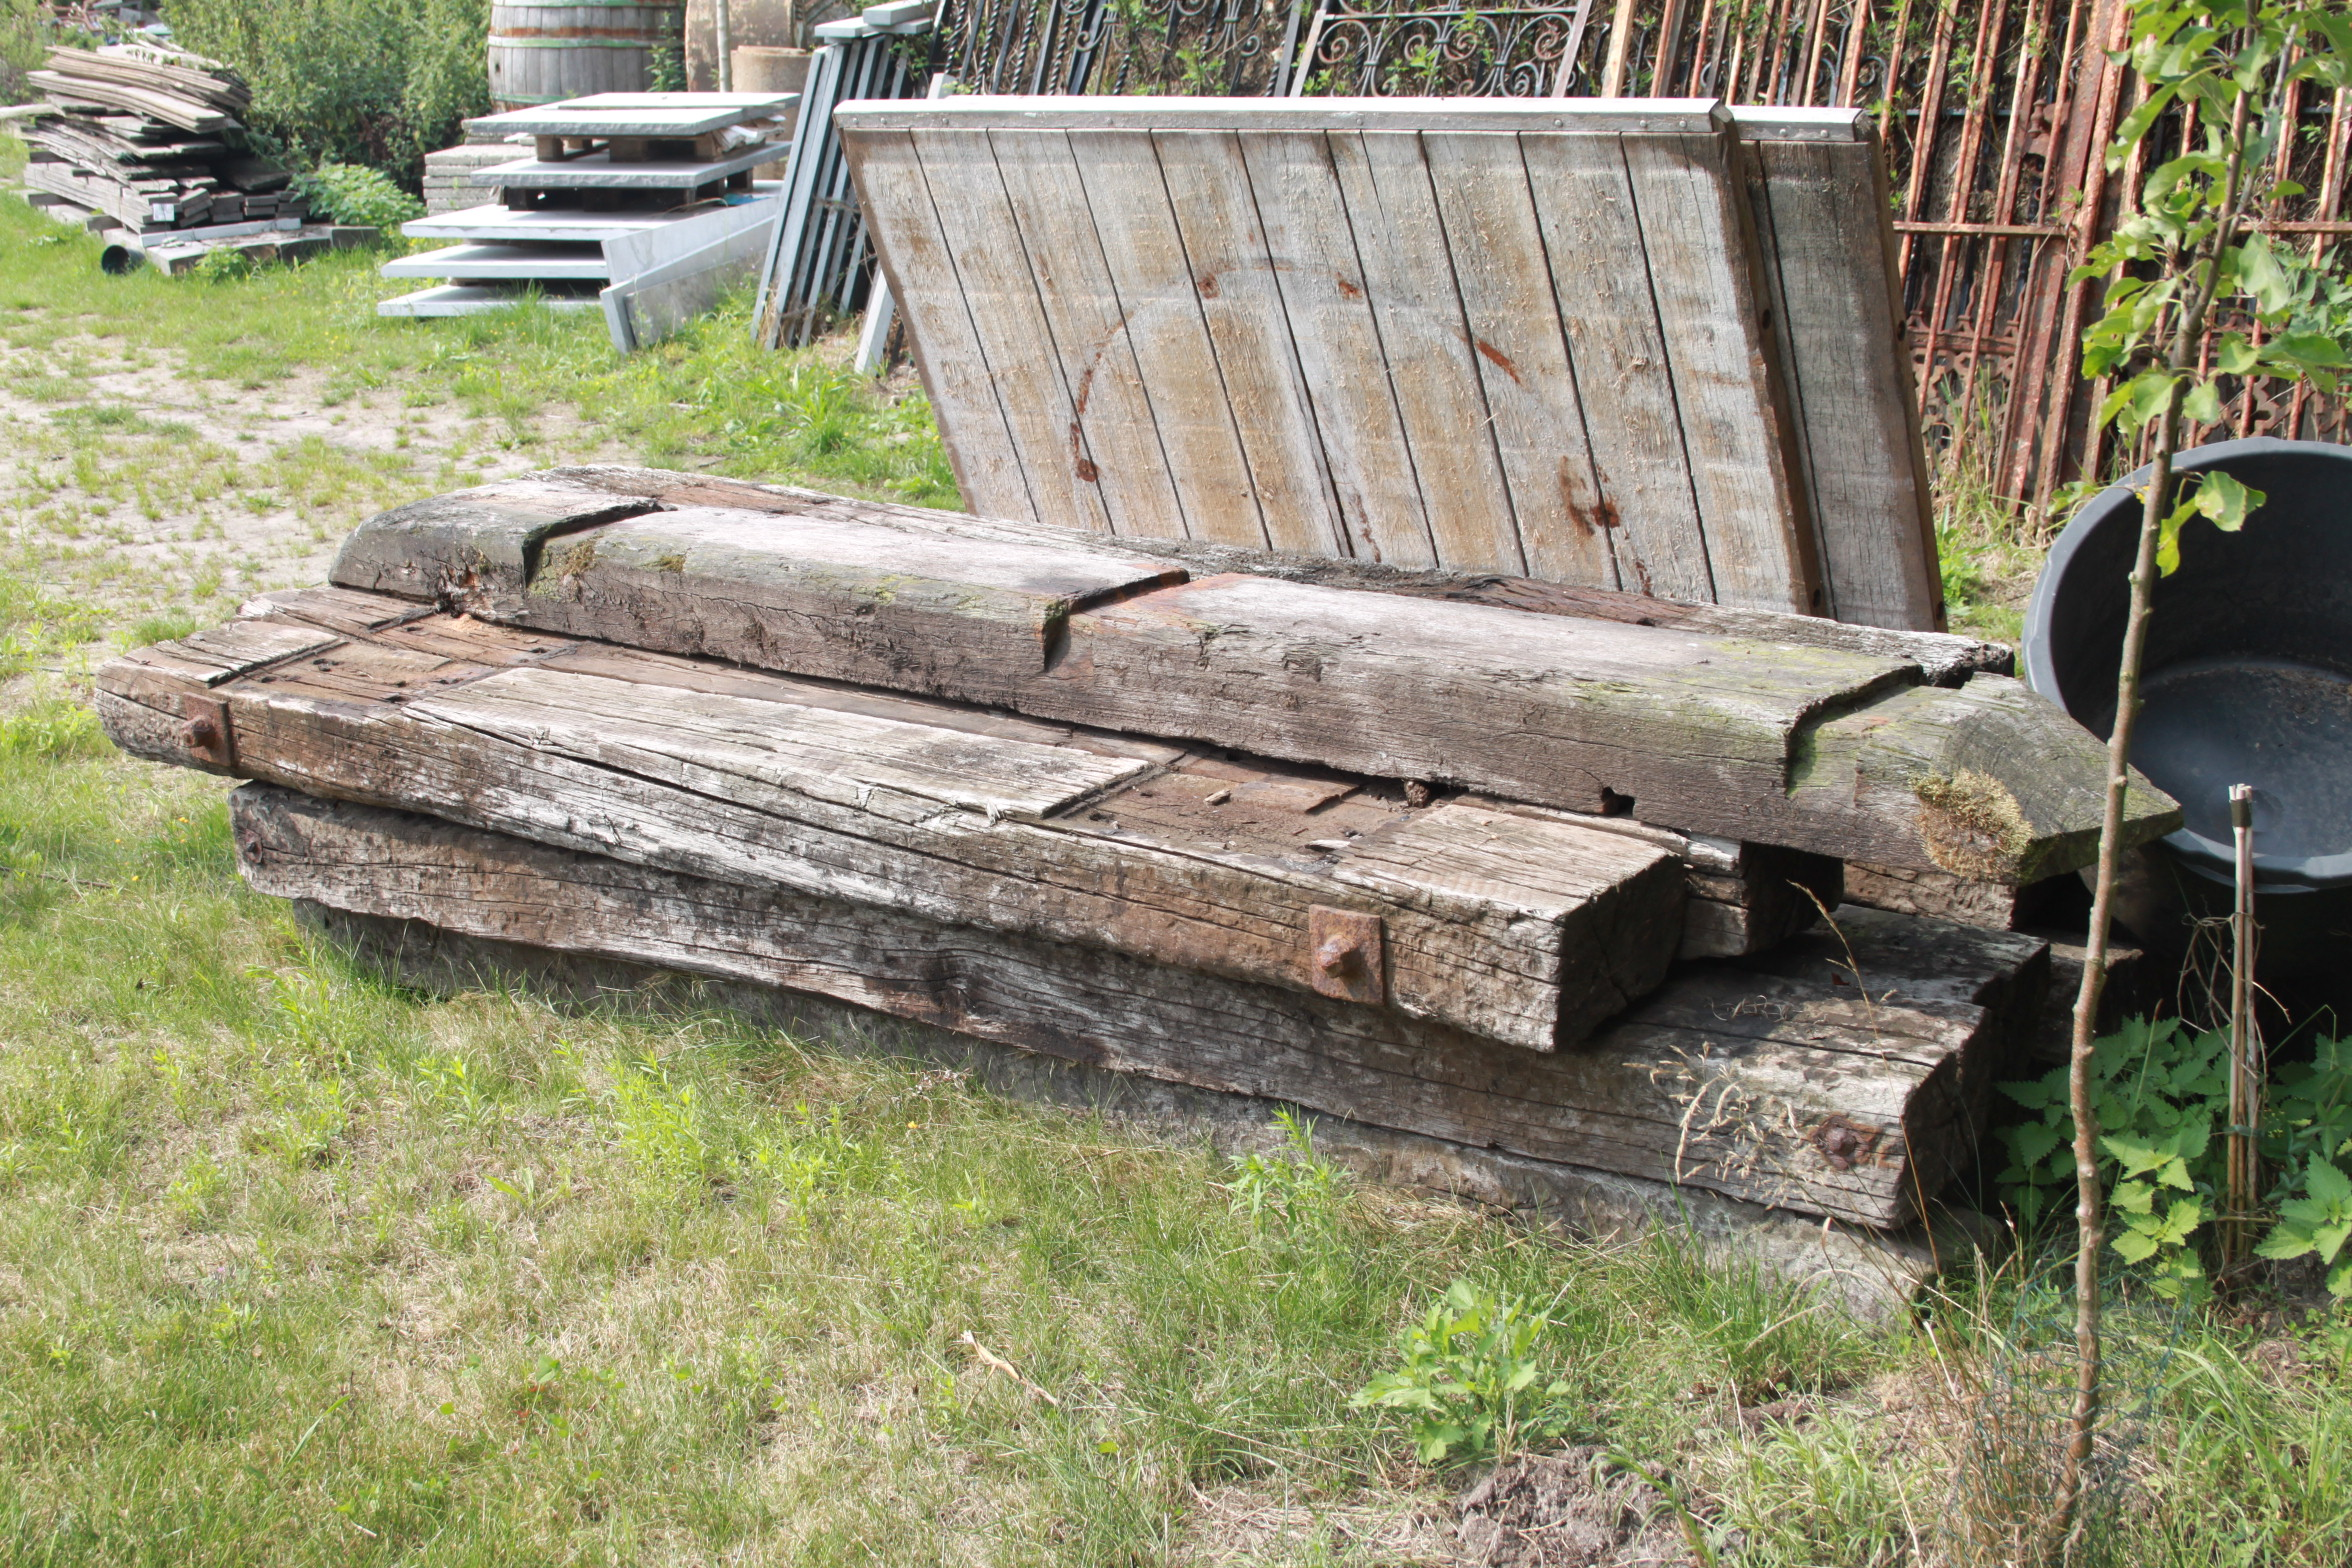 Used Railroad Ties | VAN ROY KASSEIEN